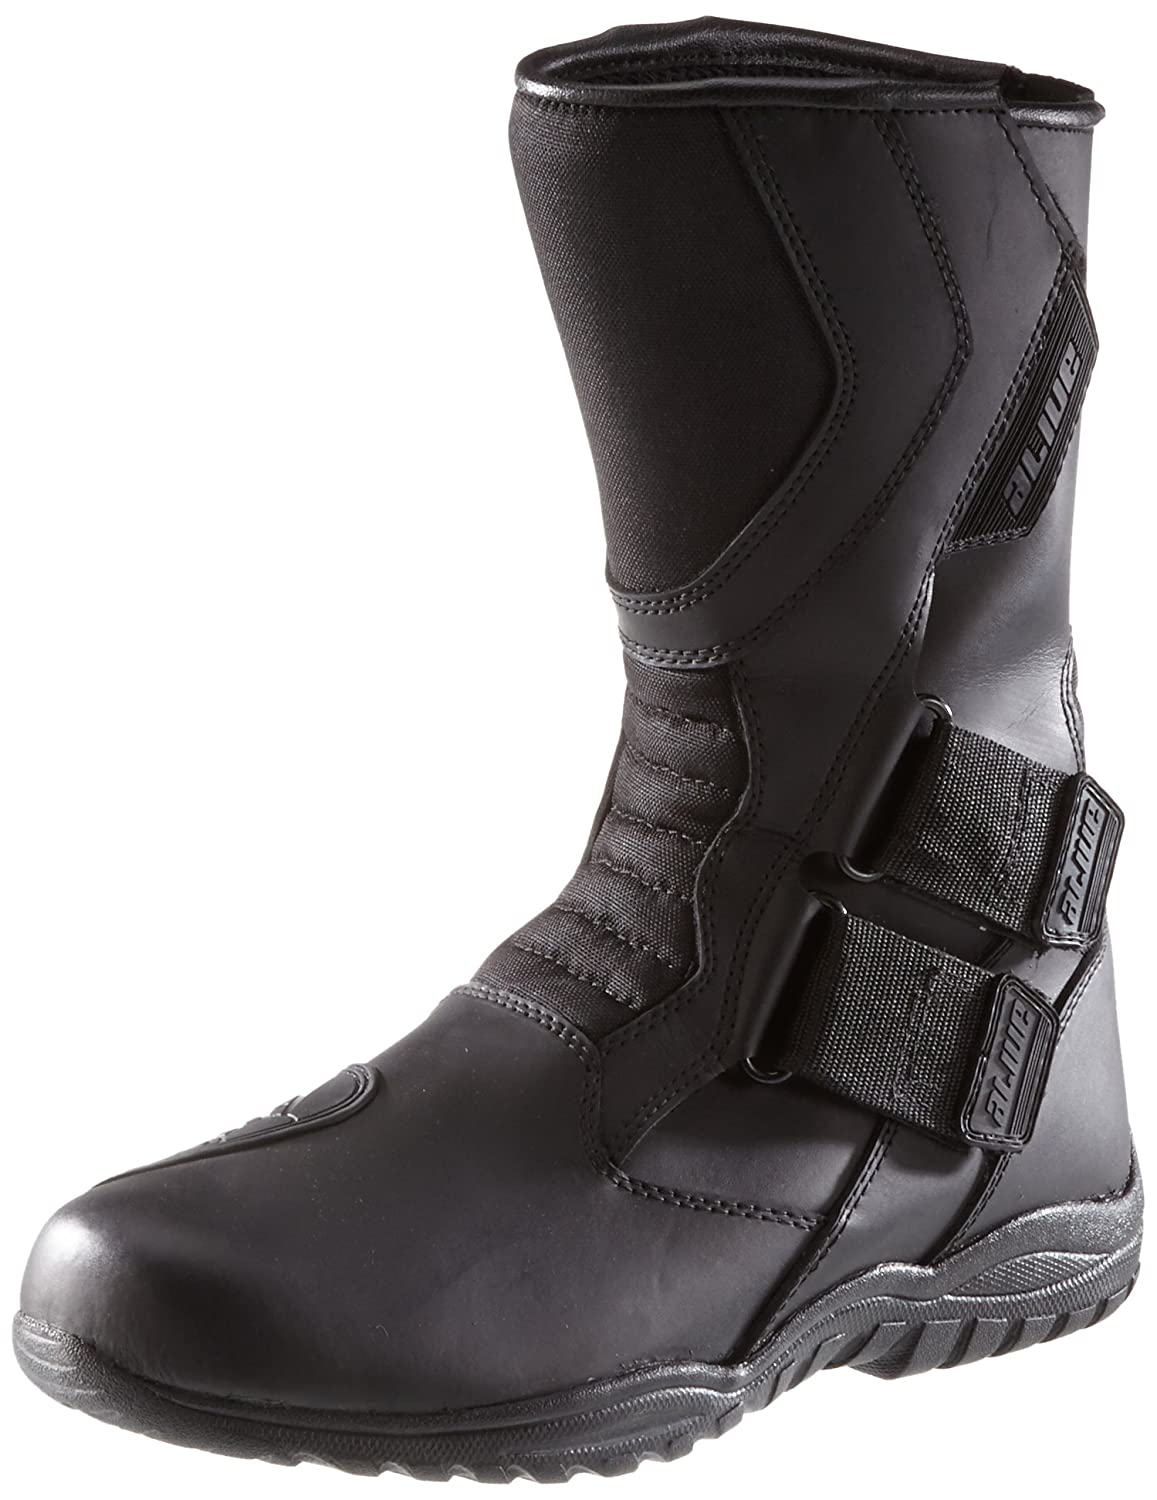 Protectwear Motorcycle Boots Touring Boots TB-ALH Size 44